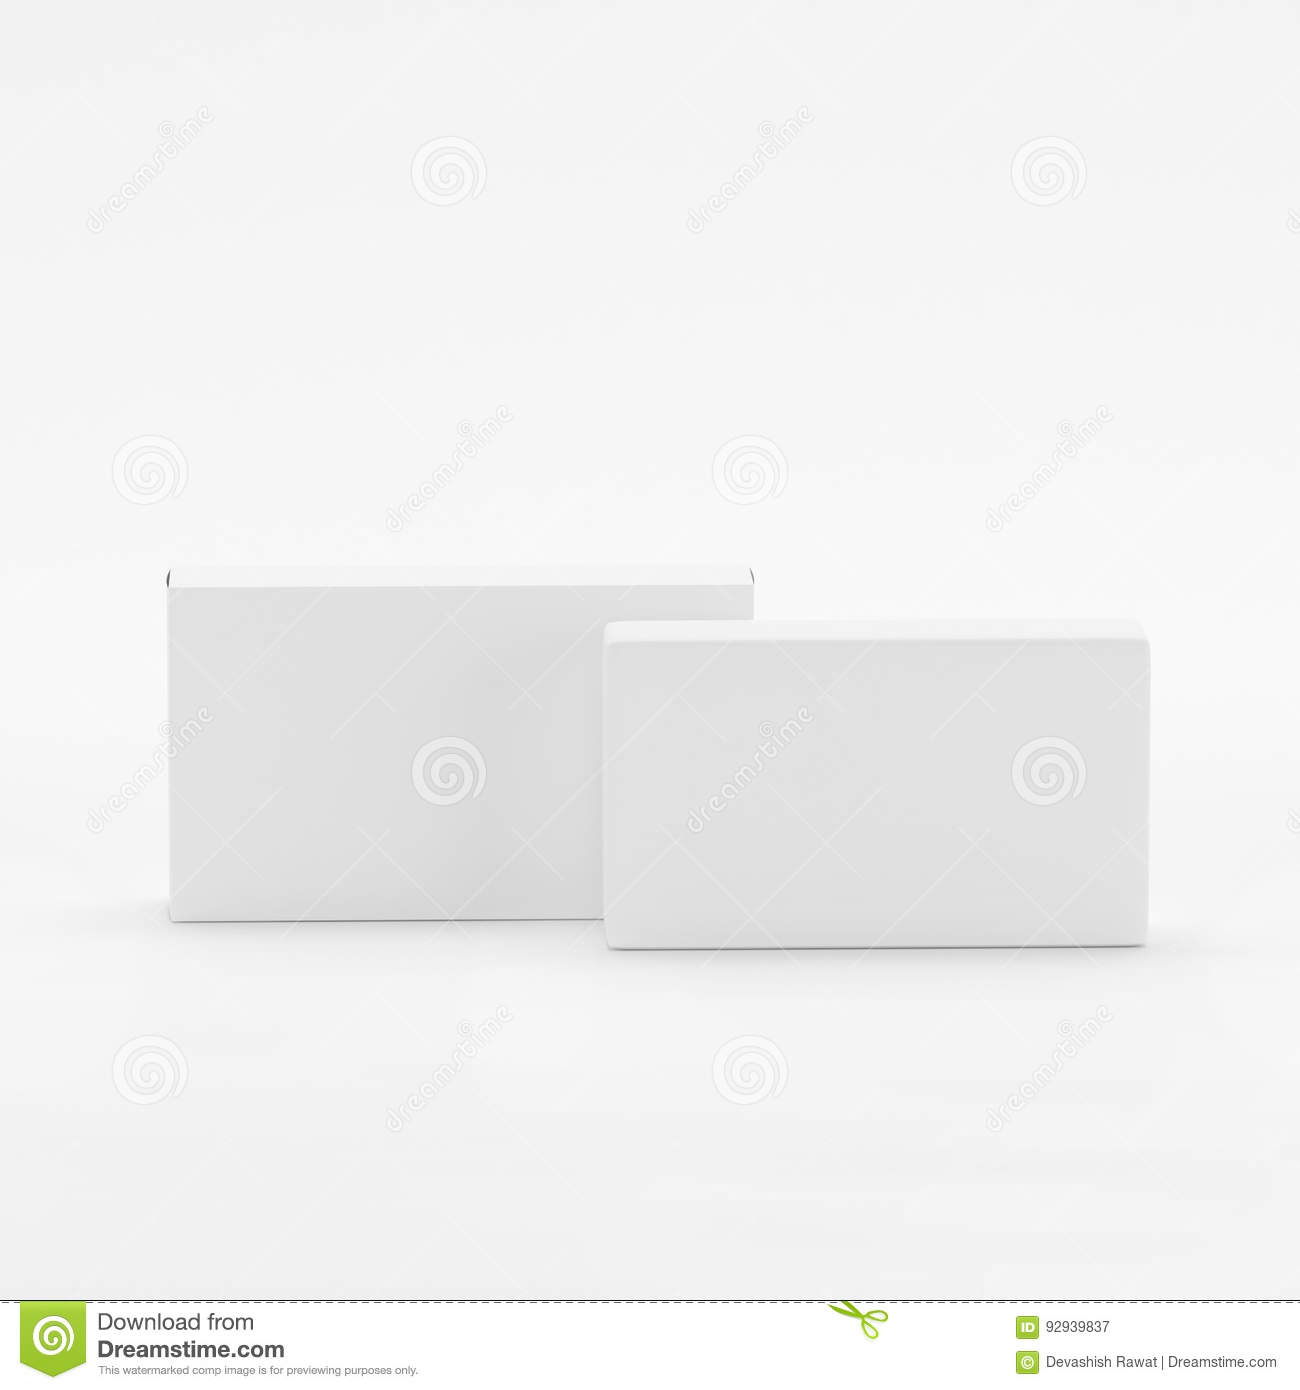 Blank Soap & Box Packaging Mock-Up Template On White Background, Ready For Your Design And Presentation, 3D Illustration